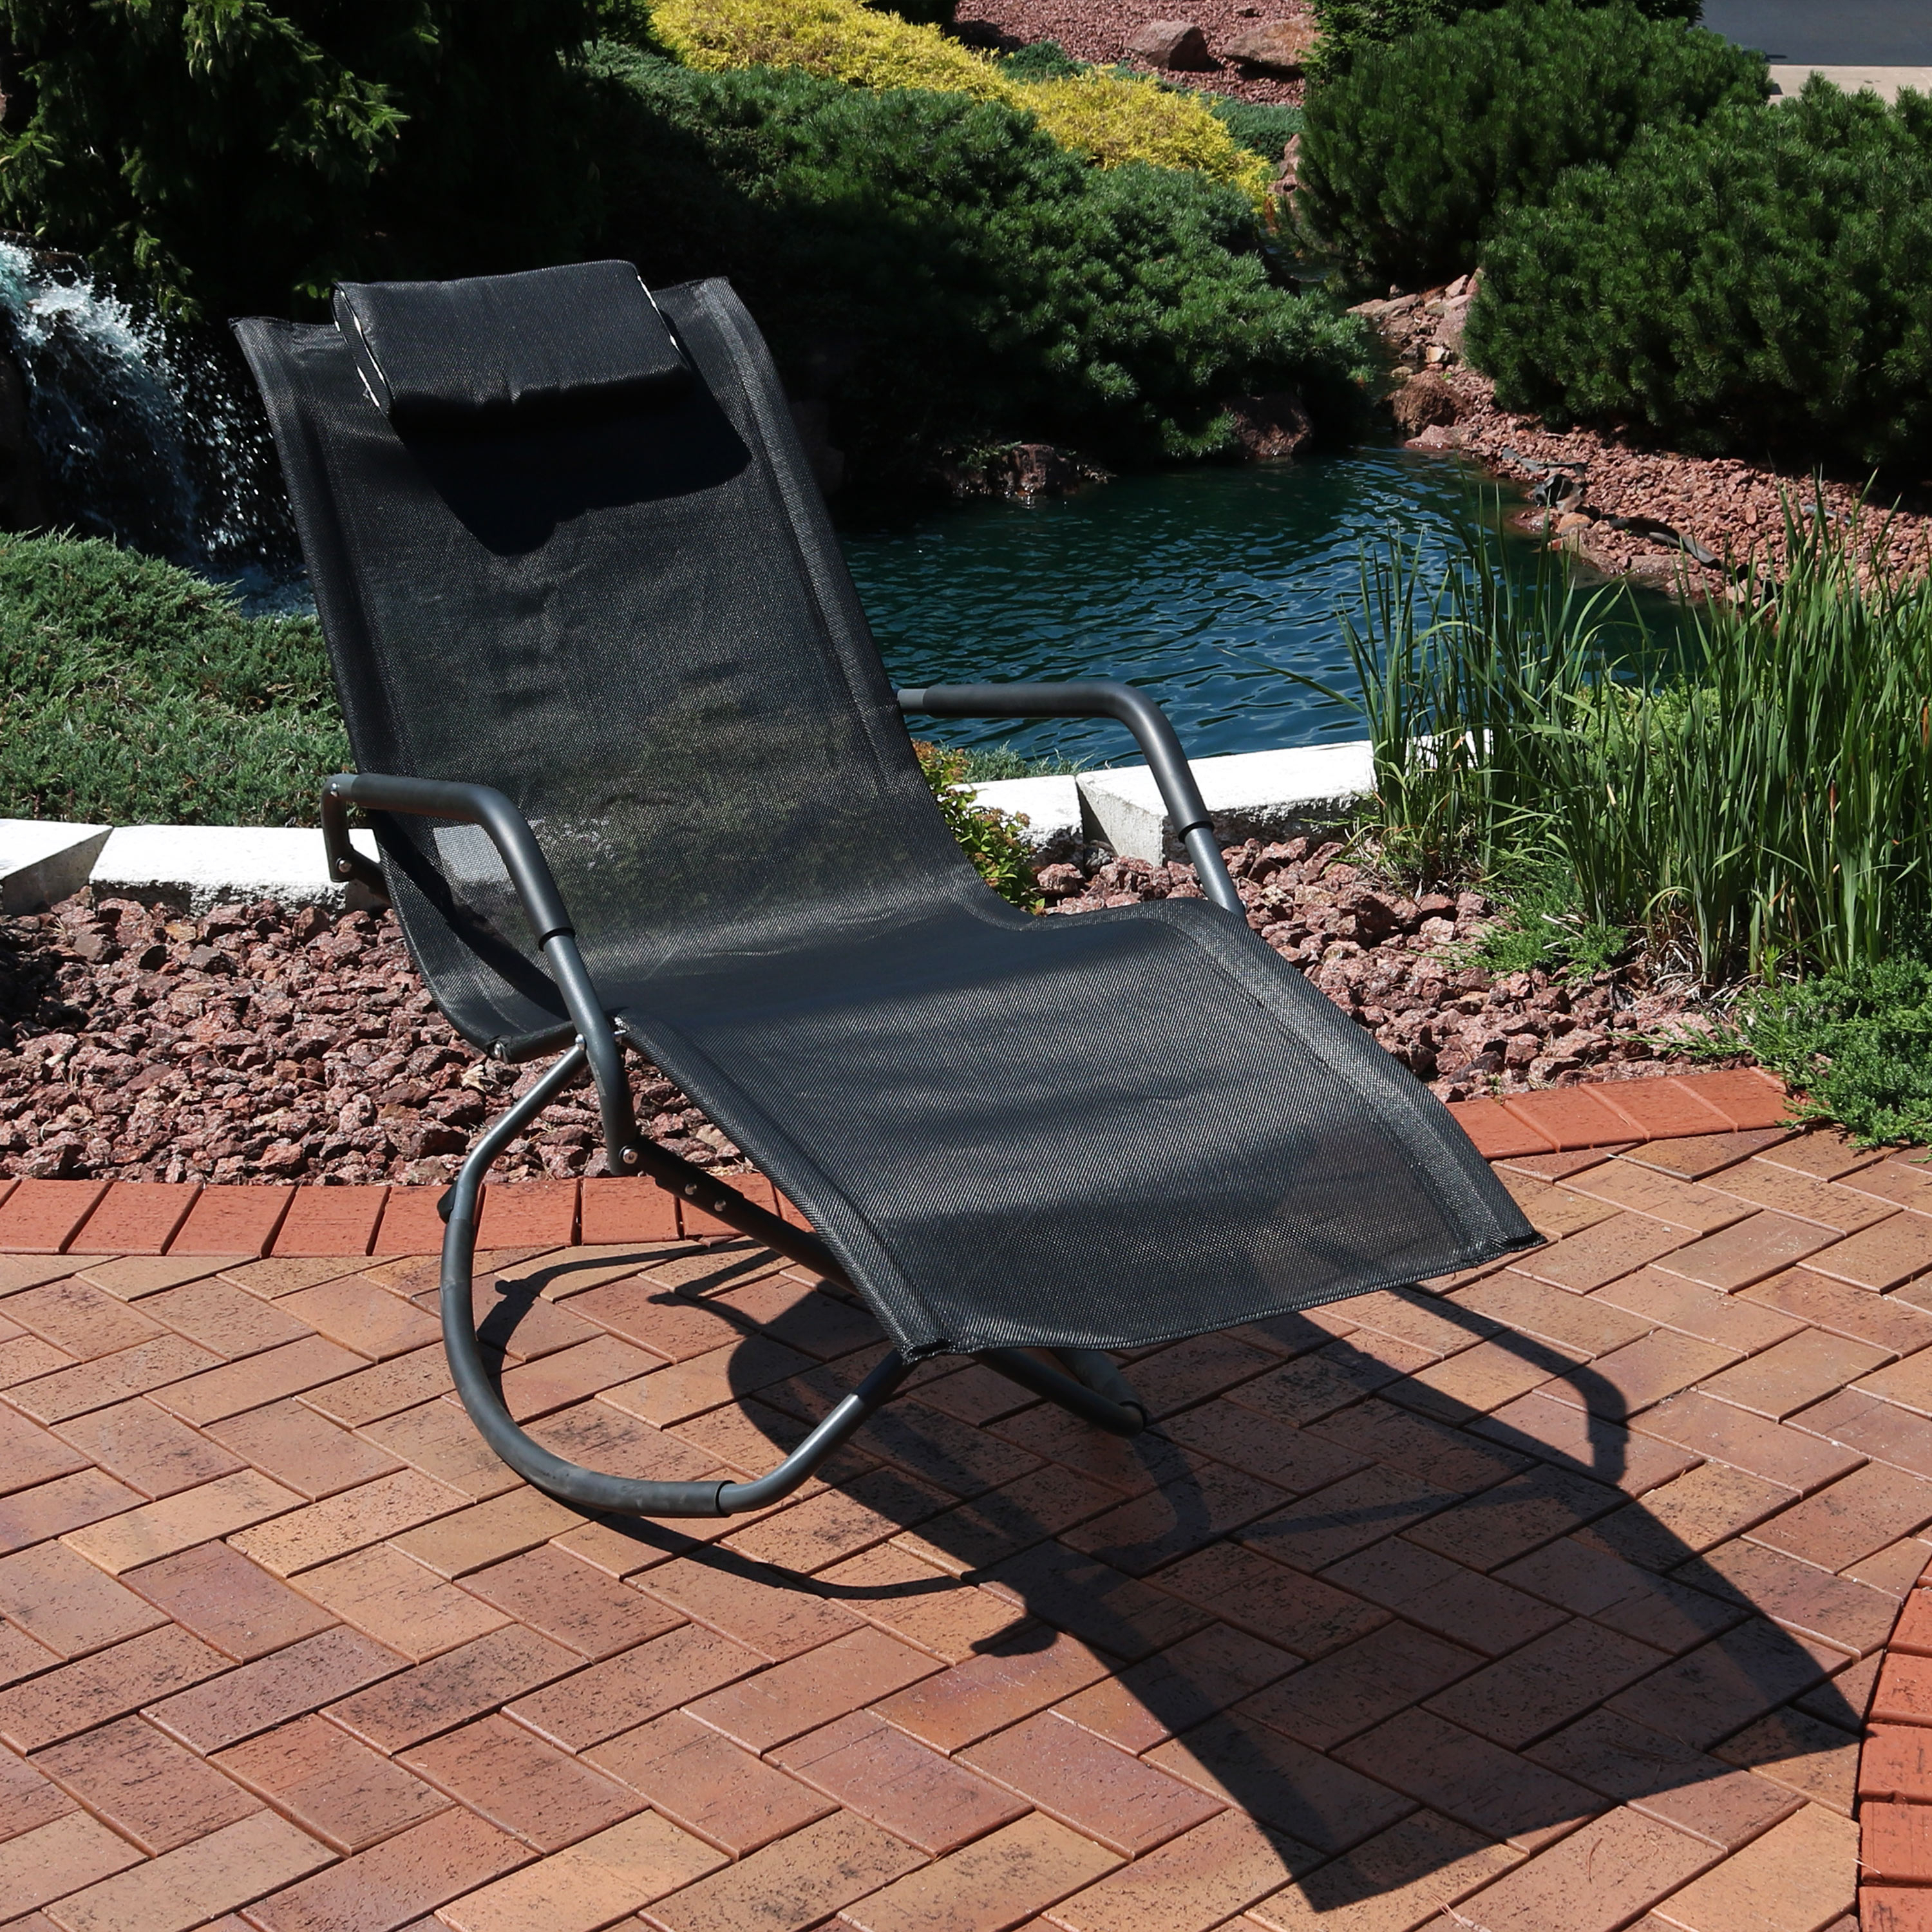 Steel Sling Fabric Outdoor Folding Chaise Lounges Pertaining To Newest Sunnydaze Rocking Chaise Lounge Chair With Headrest Pillow, Outdoor Folding  Patio Lounger, Black (View 19 of 25)